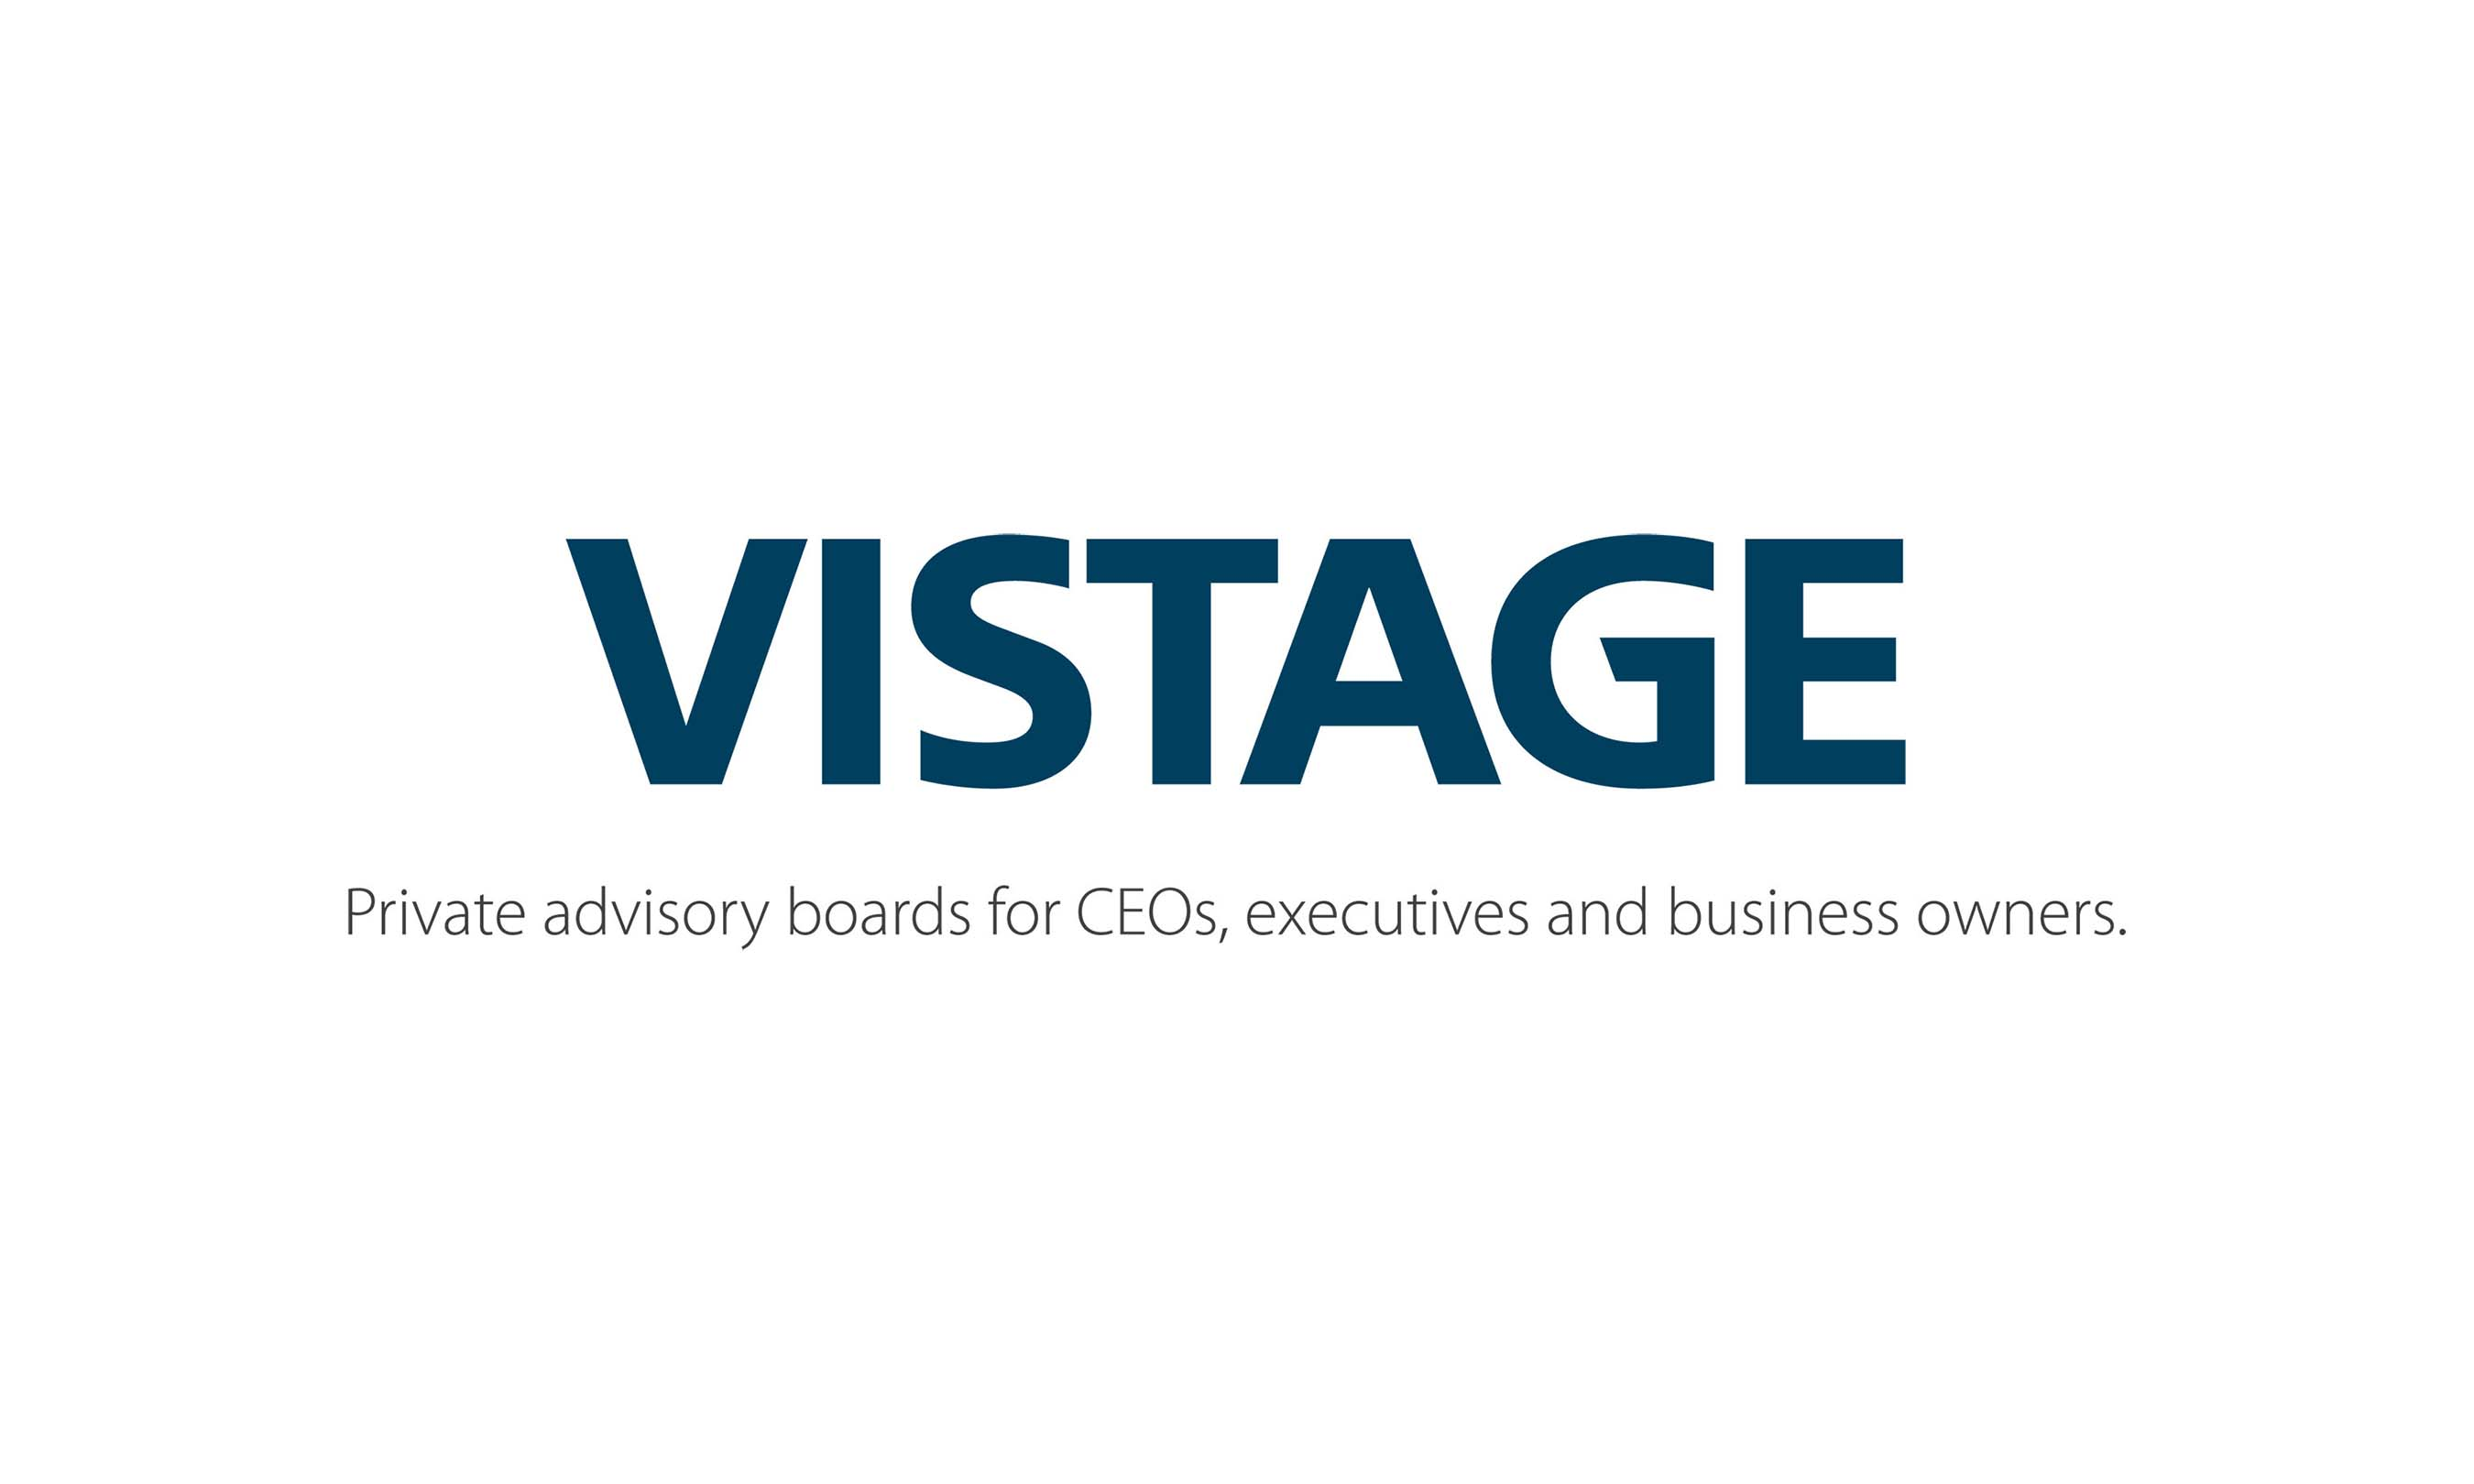 Vistage: Private Advisory Boards for CEOs, executives and business owners.